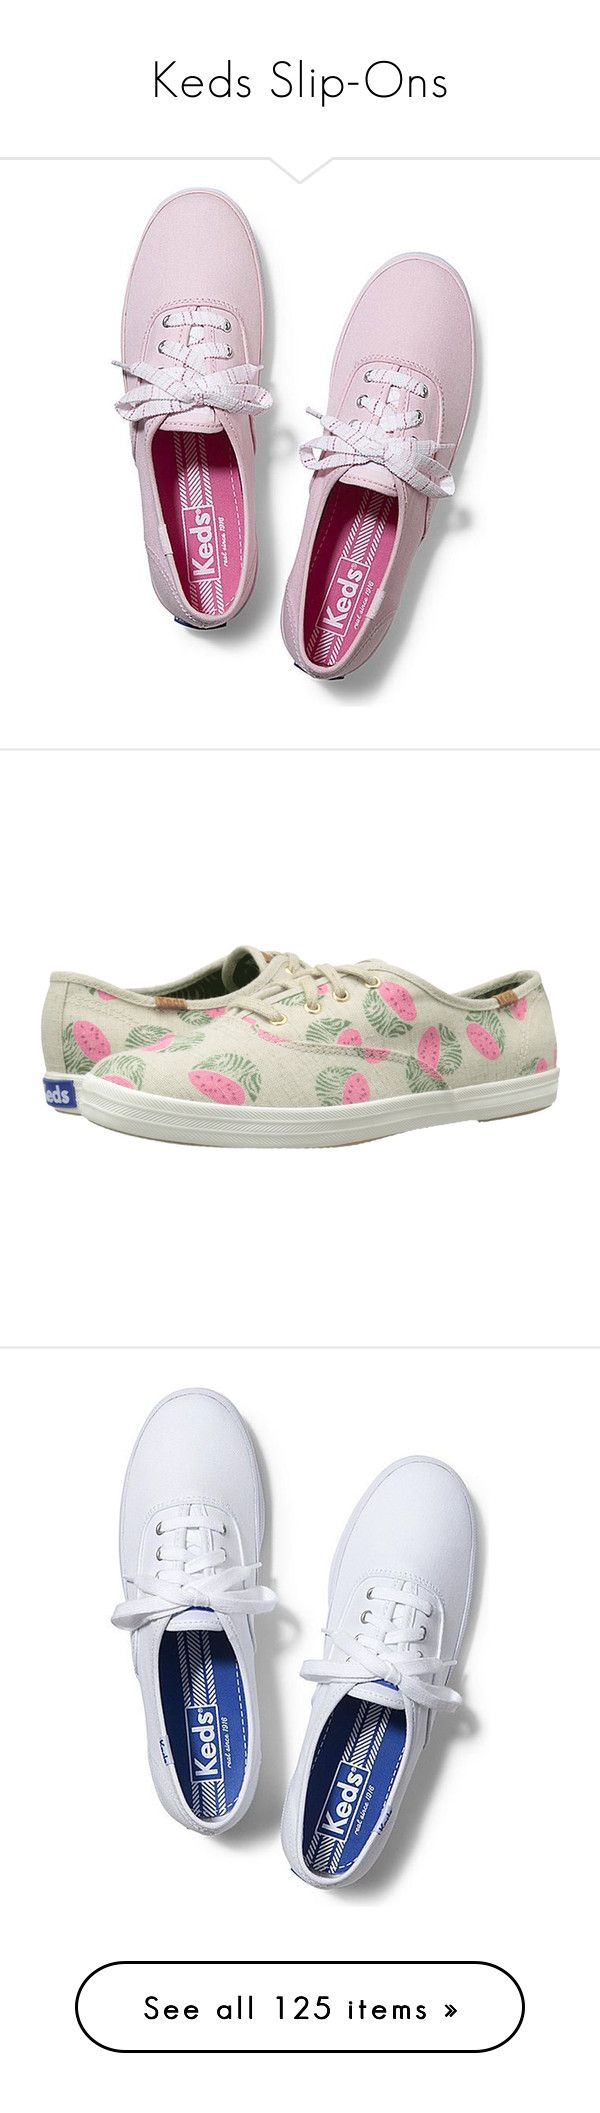 """""""Keds Slip-Ons"""" by nathaliecastaneda ❤ liked on Polyvore featuring shoes, sneakers, keds, pink, light pink, lace sneakers, multicolor sneakers, pink sneakers, colorful shoes and lace shoes"""